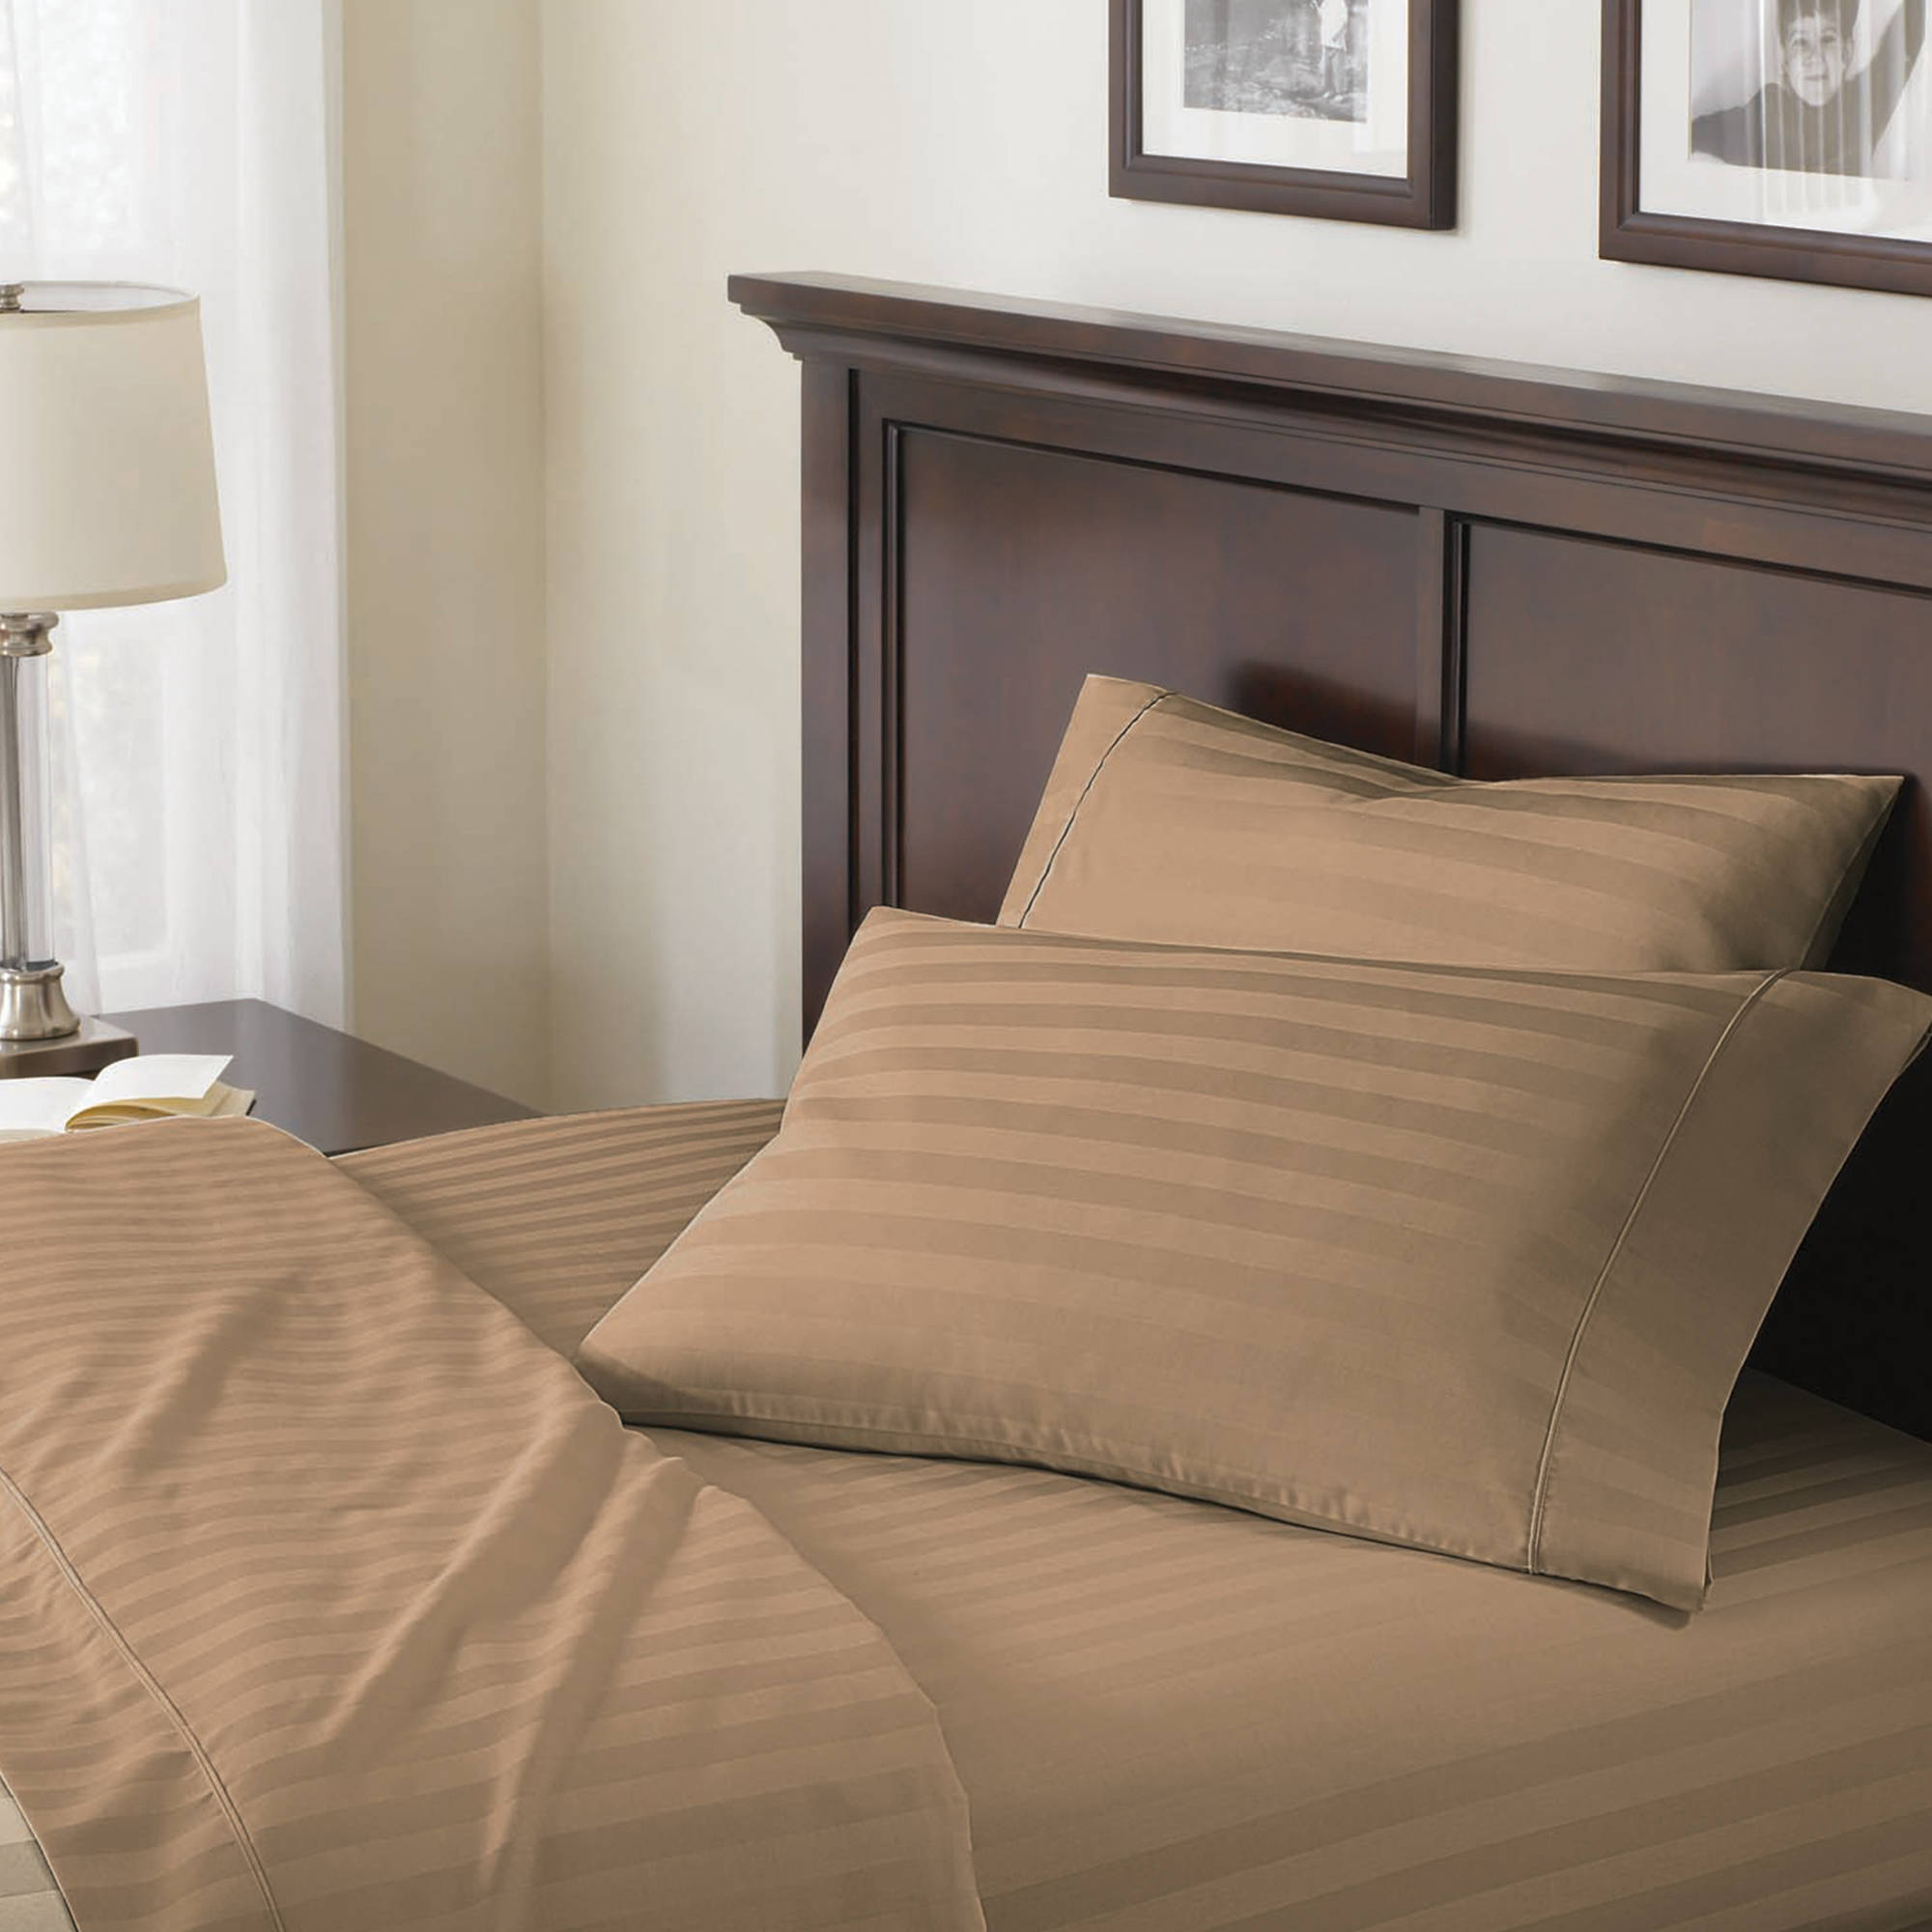 Better Homes and Gardens 400-Thread Count Damask Sheet Set - Walmart.com